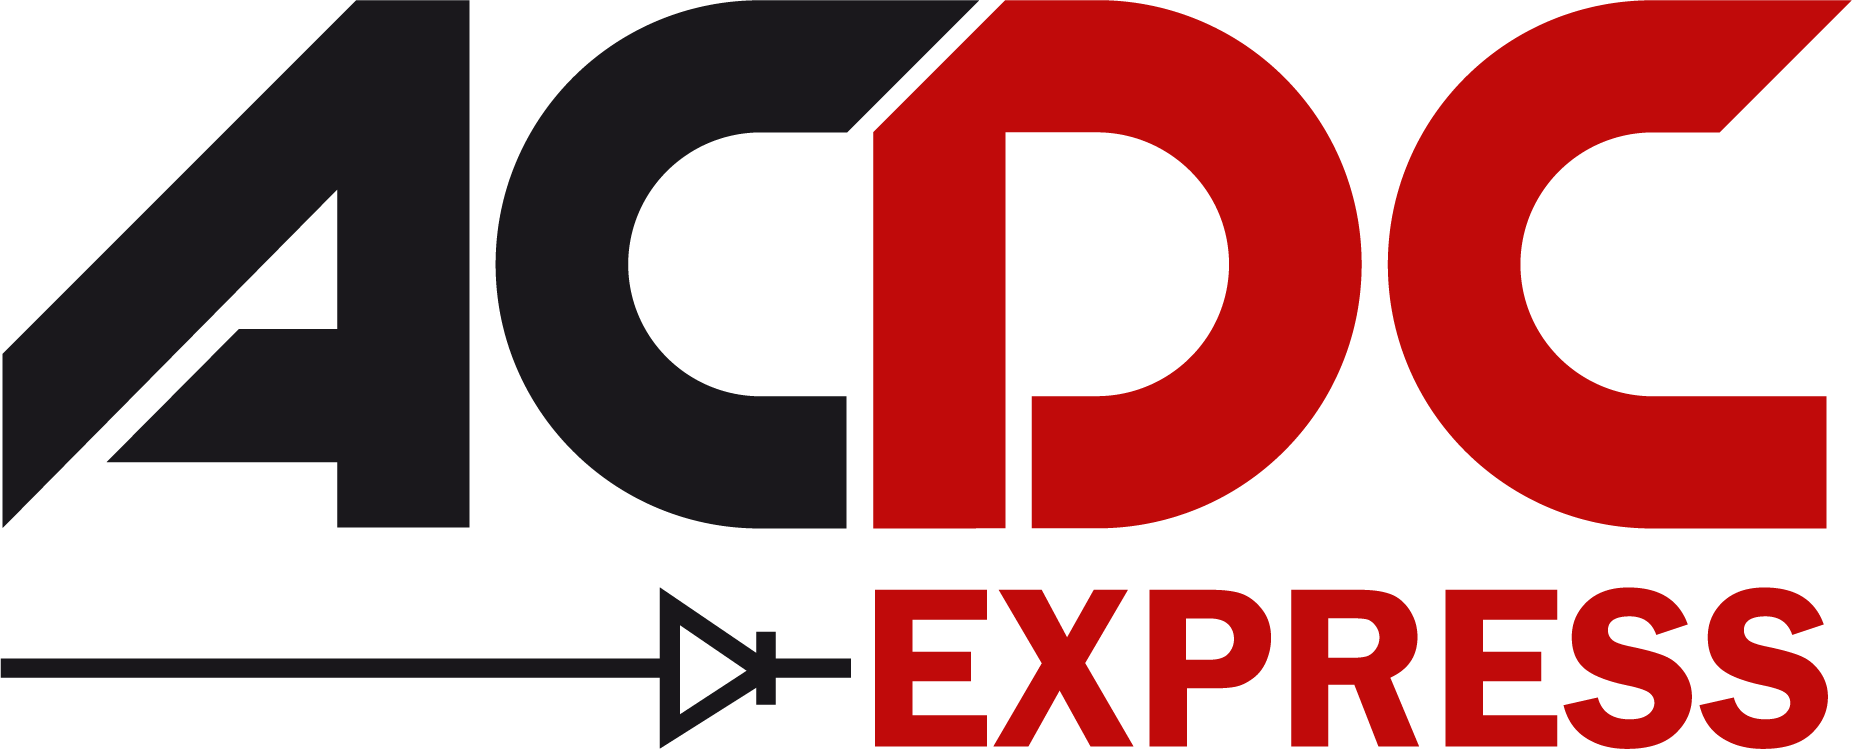 Express Logo CMYK copy